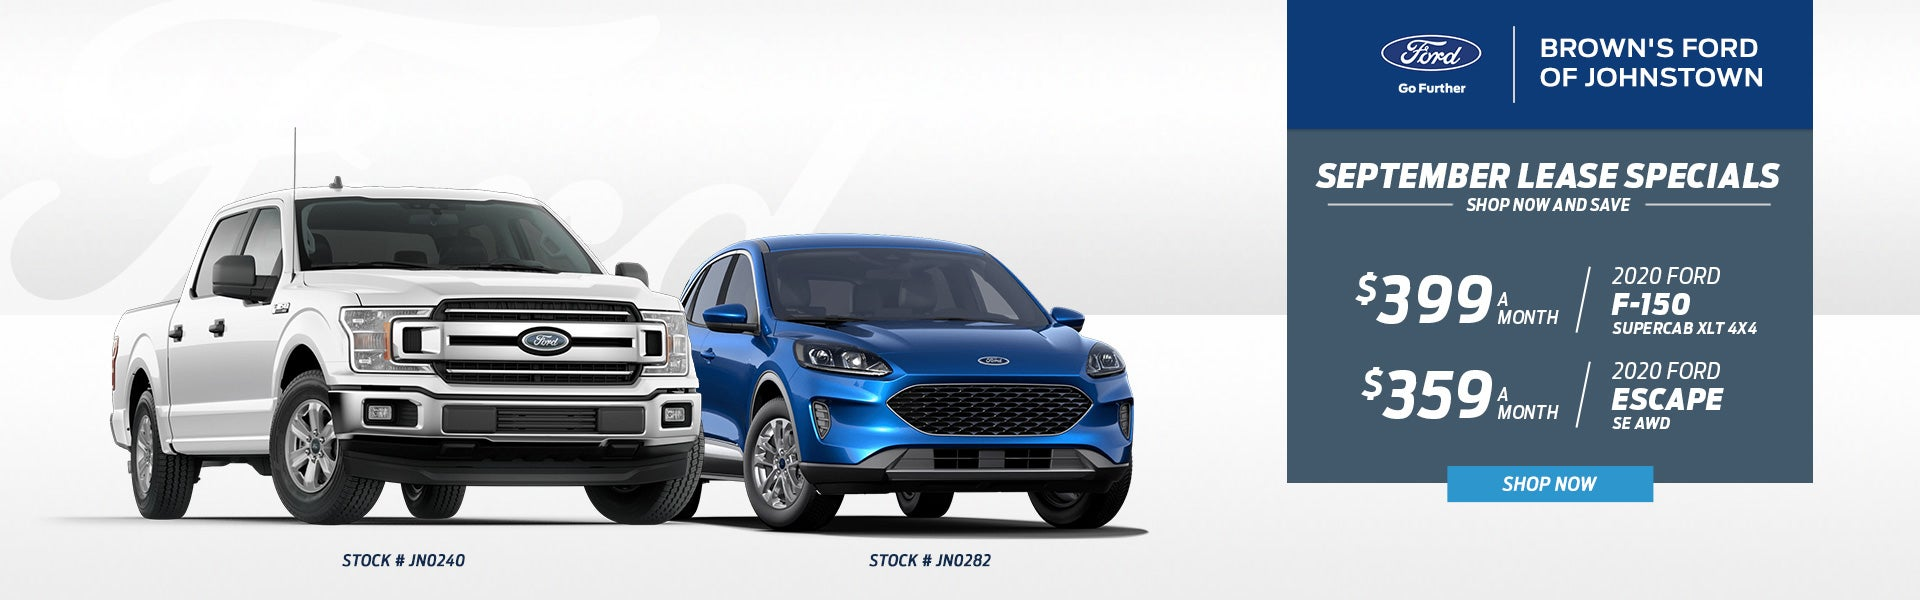 Browns Ford Johnstown Ny >> Johnstown Ford Dealer in Johnstown NY | Amsterdam Mayfield ...